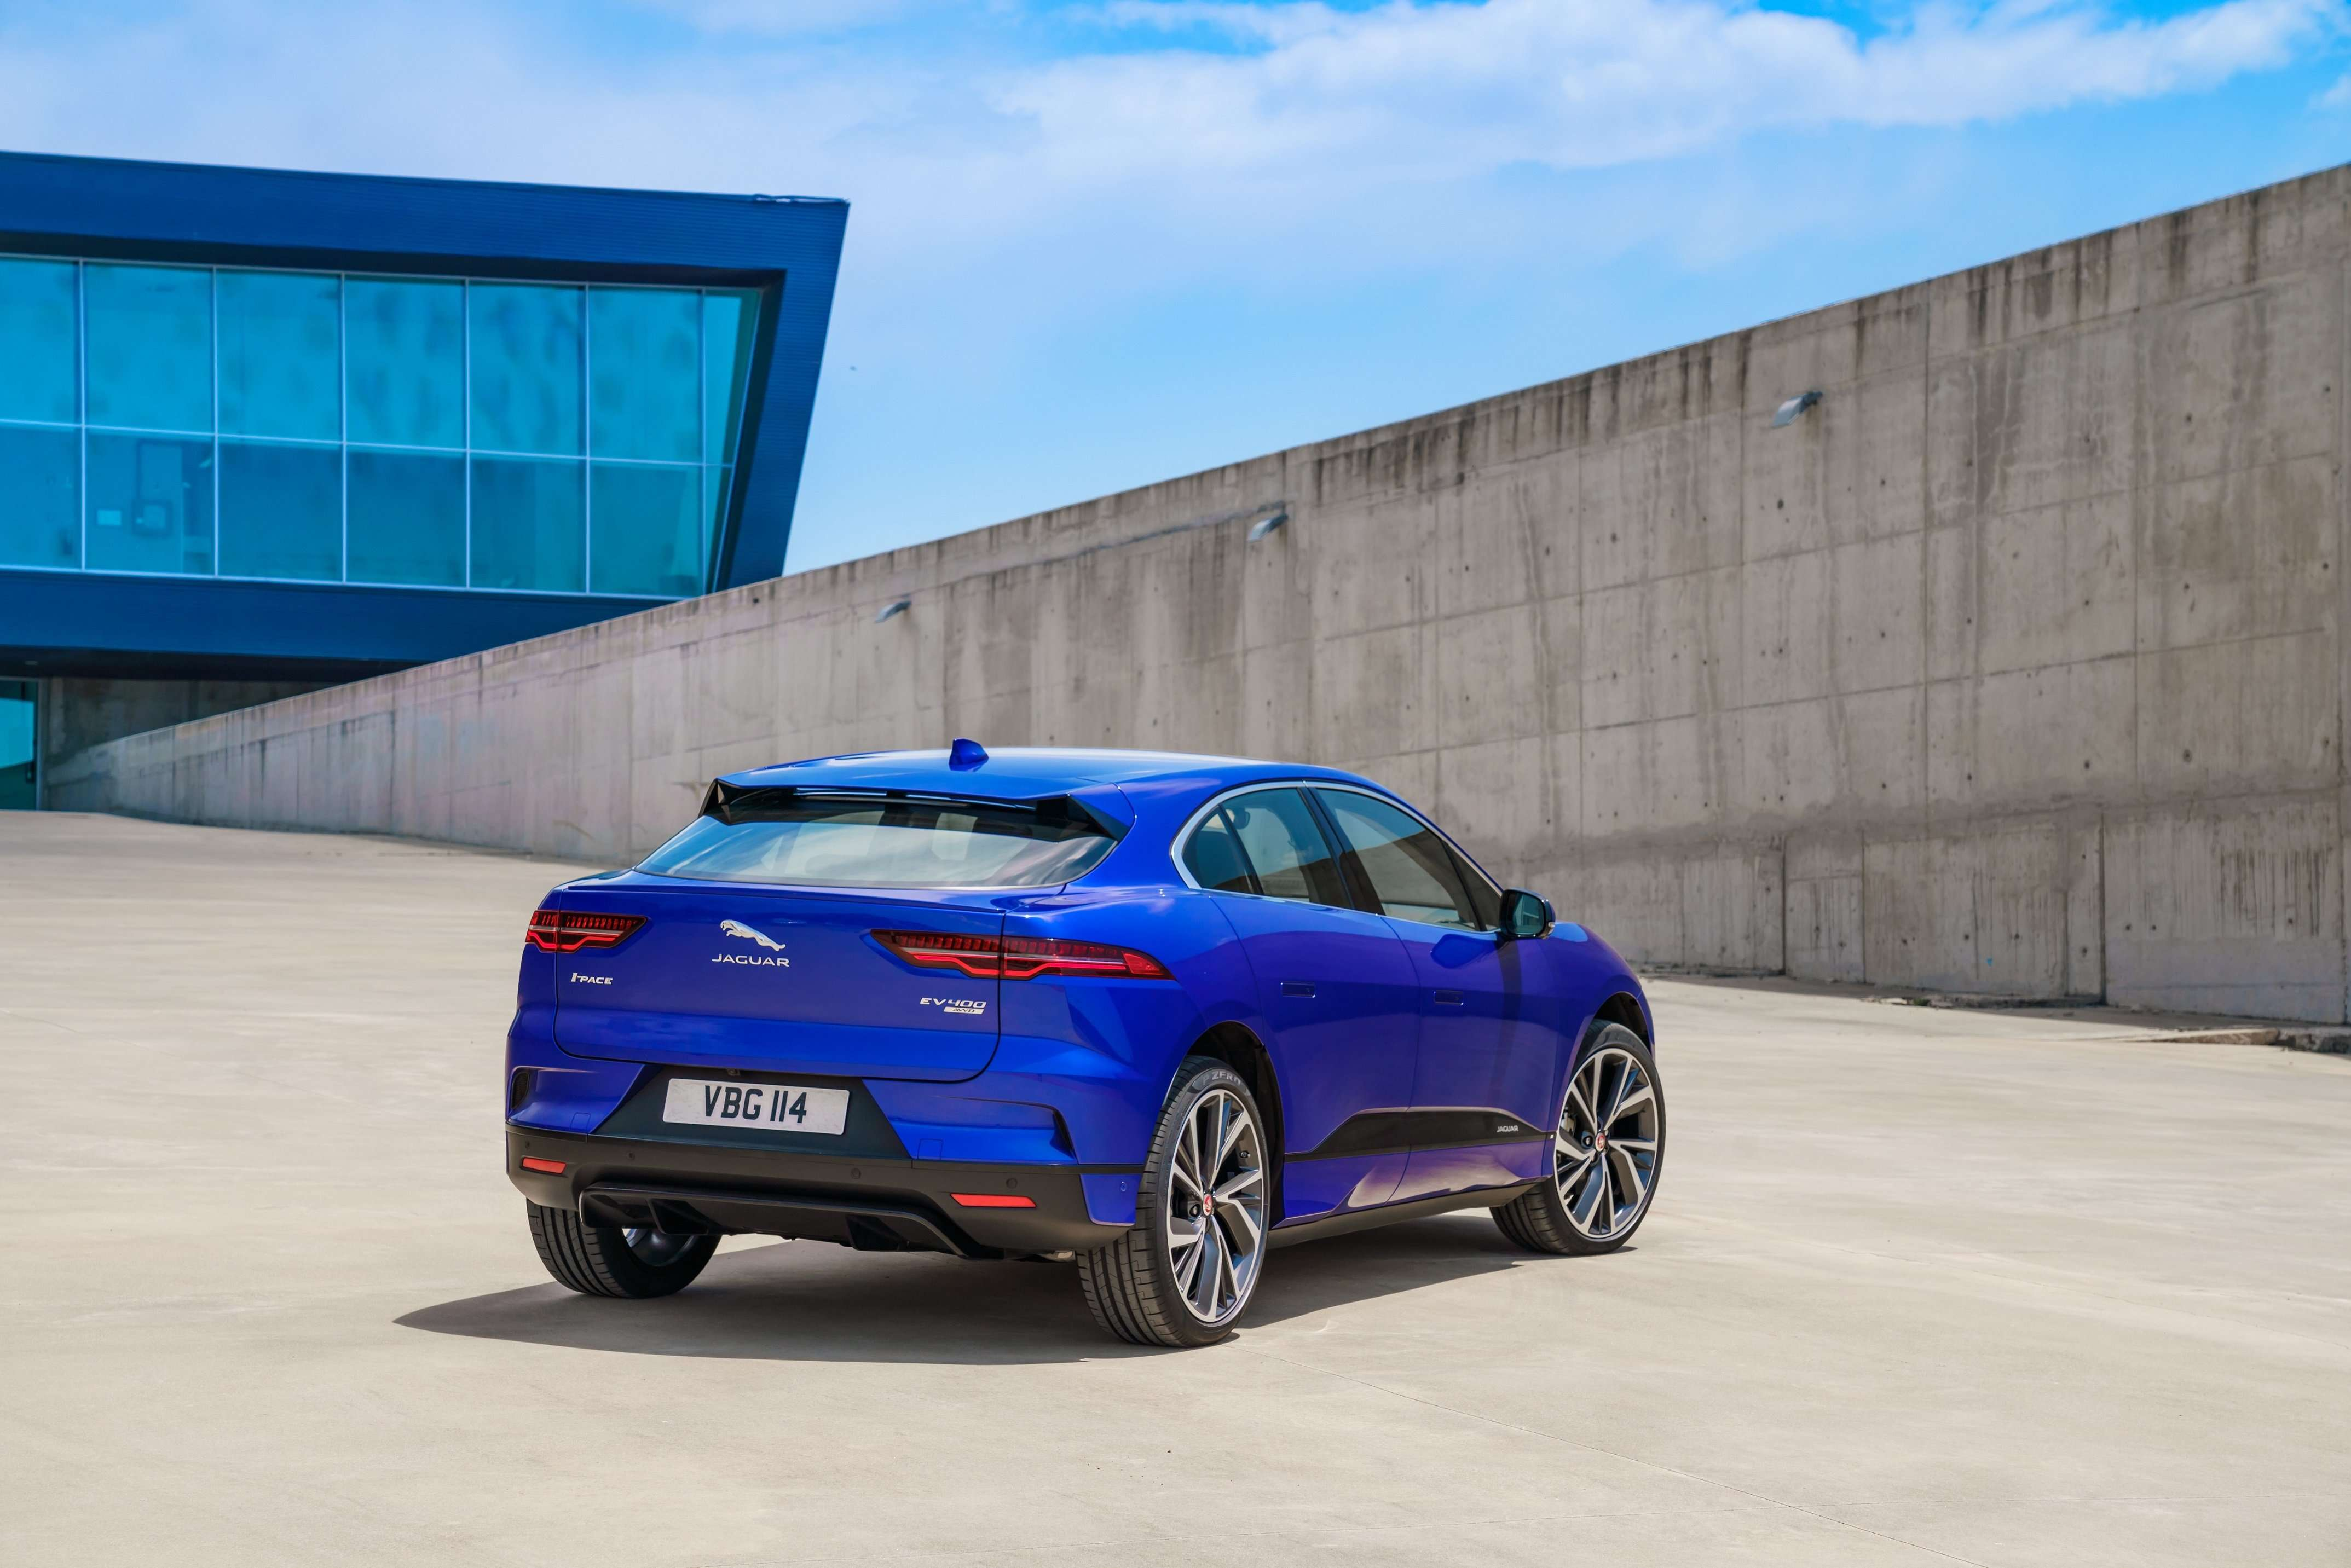 Jaguar I Pace India, Electric Land Rover SUV Launch In India jaguar land rover india